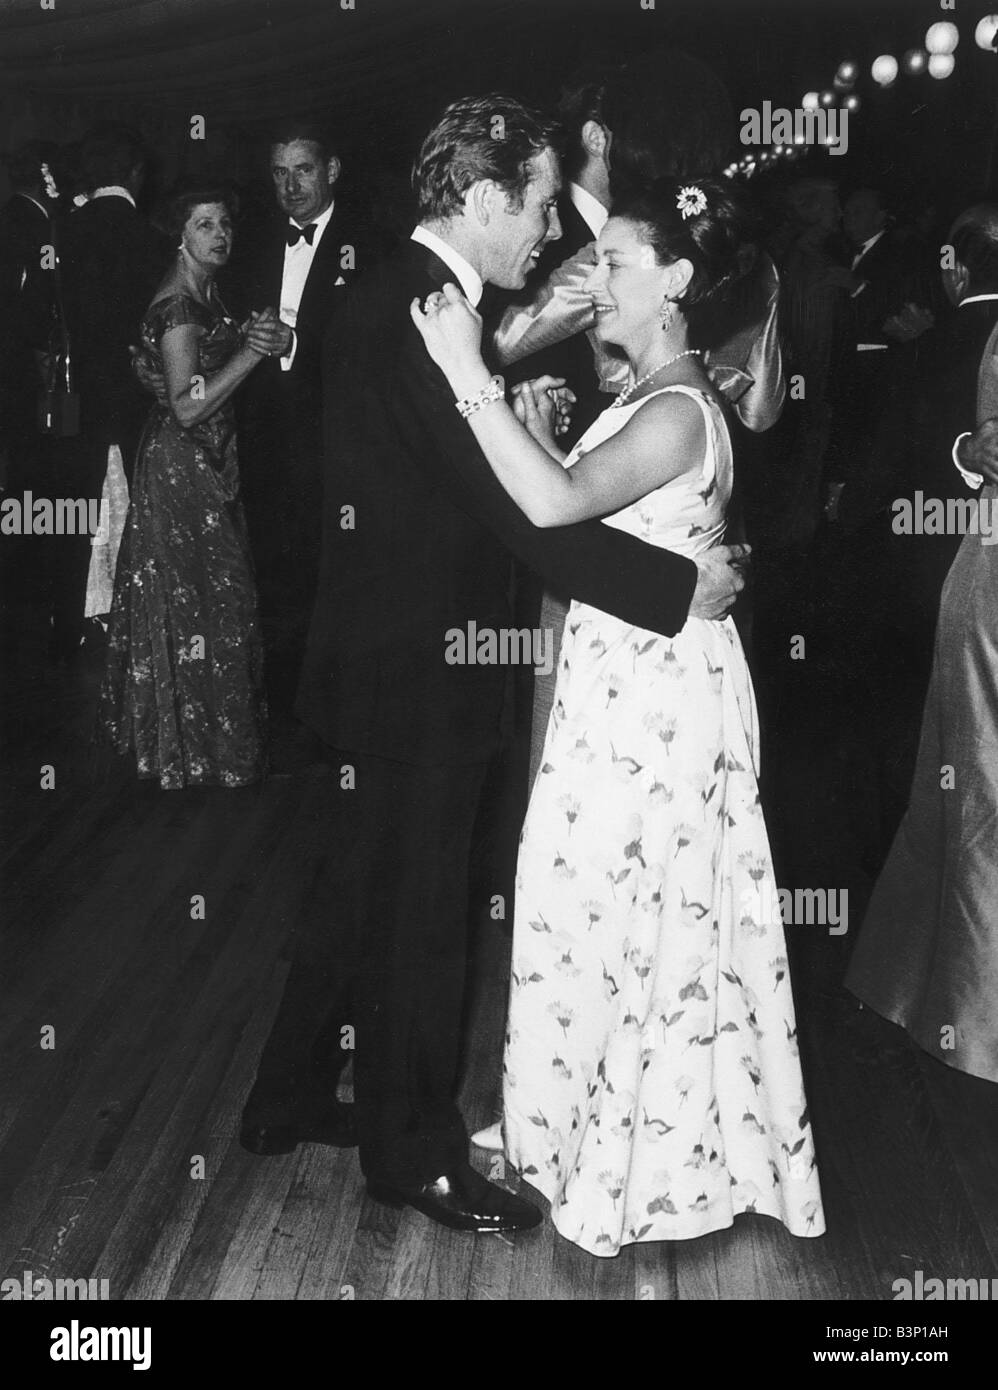 Princess Margaret And Husband Lord Snowdon Attend The First Ball